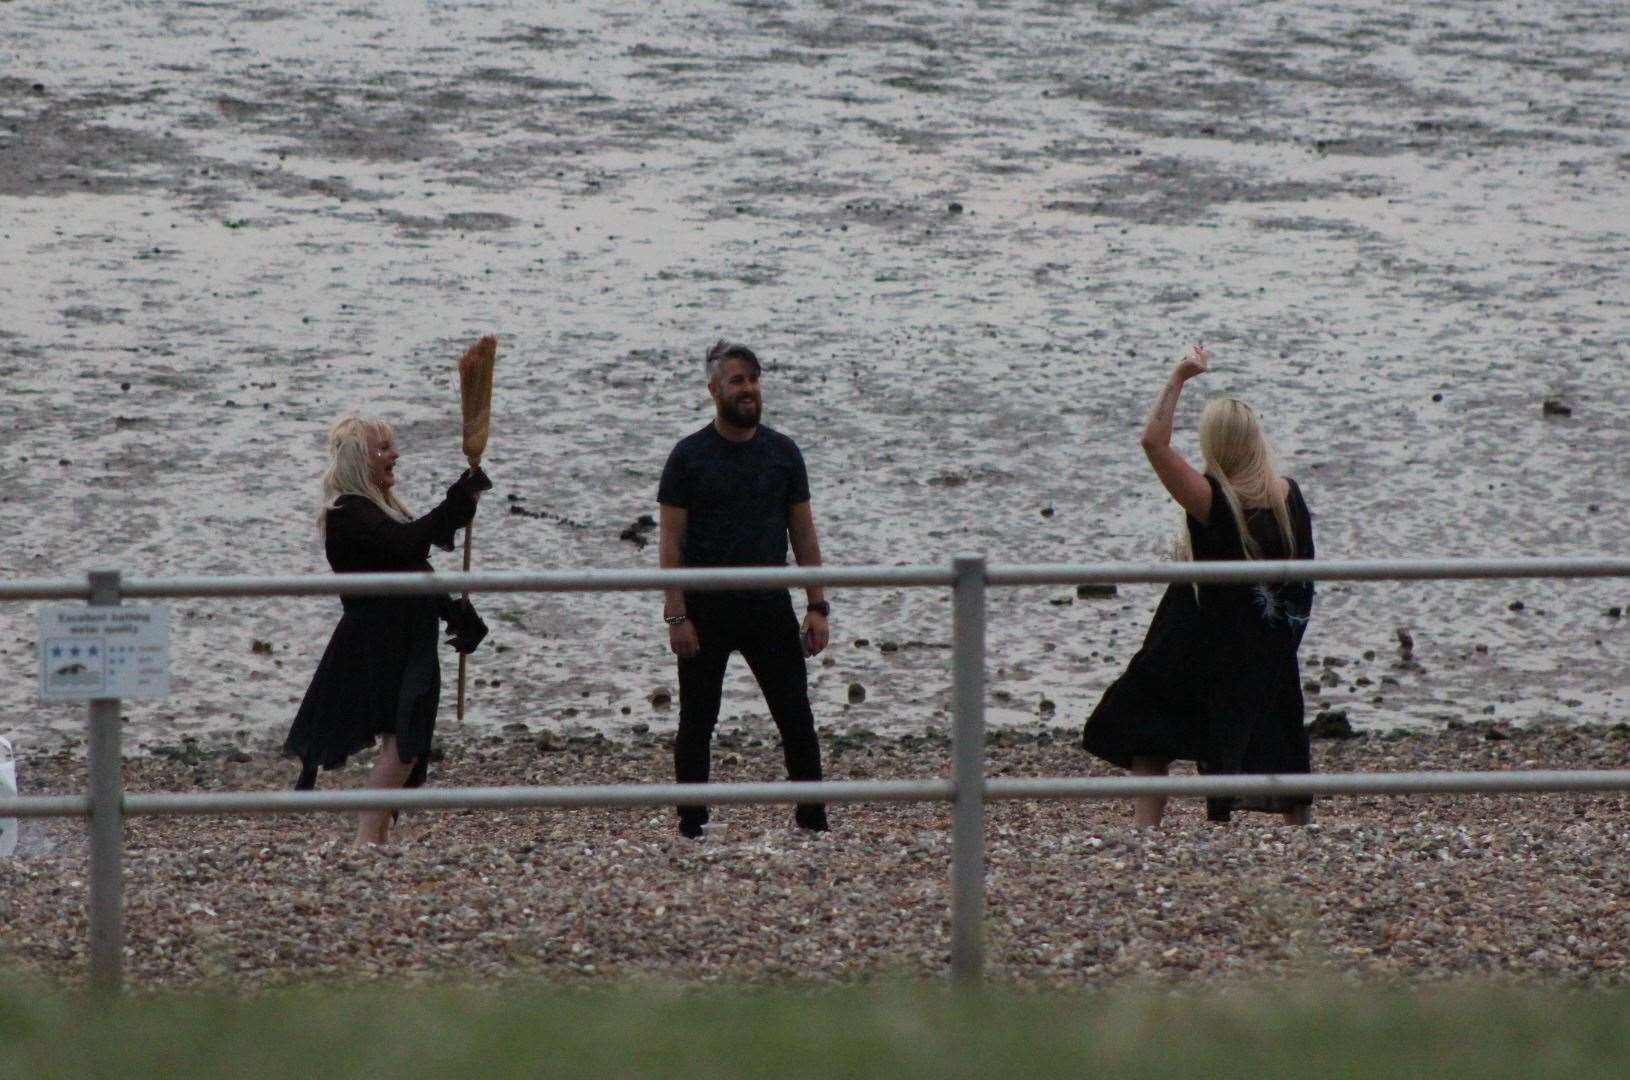 Casting a spell at the seaside - the witches of Sheppey